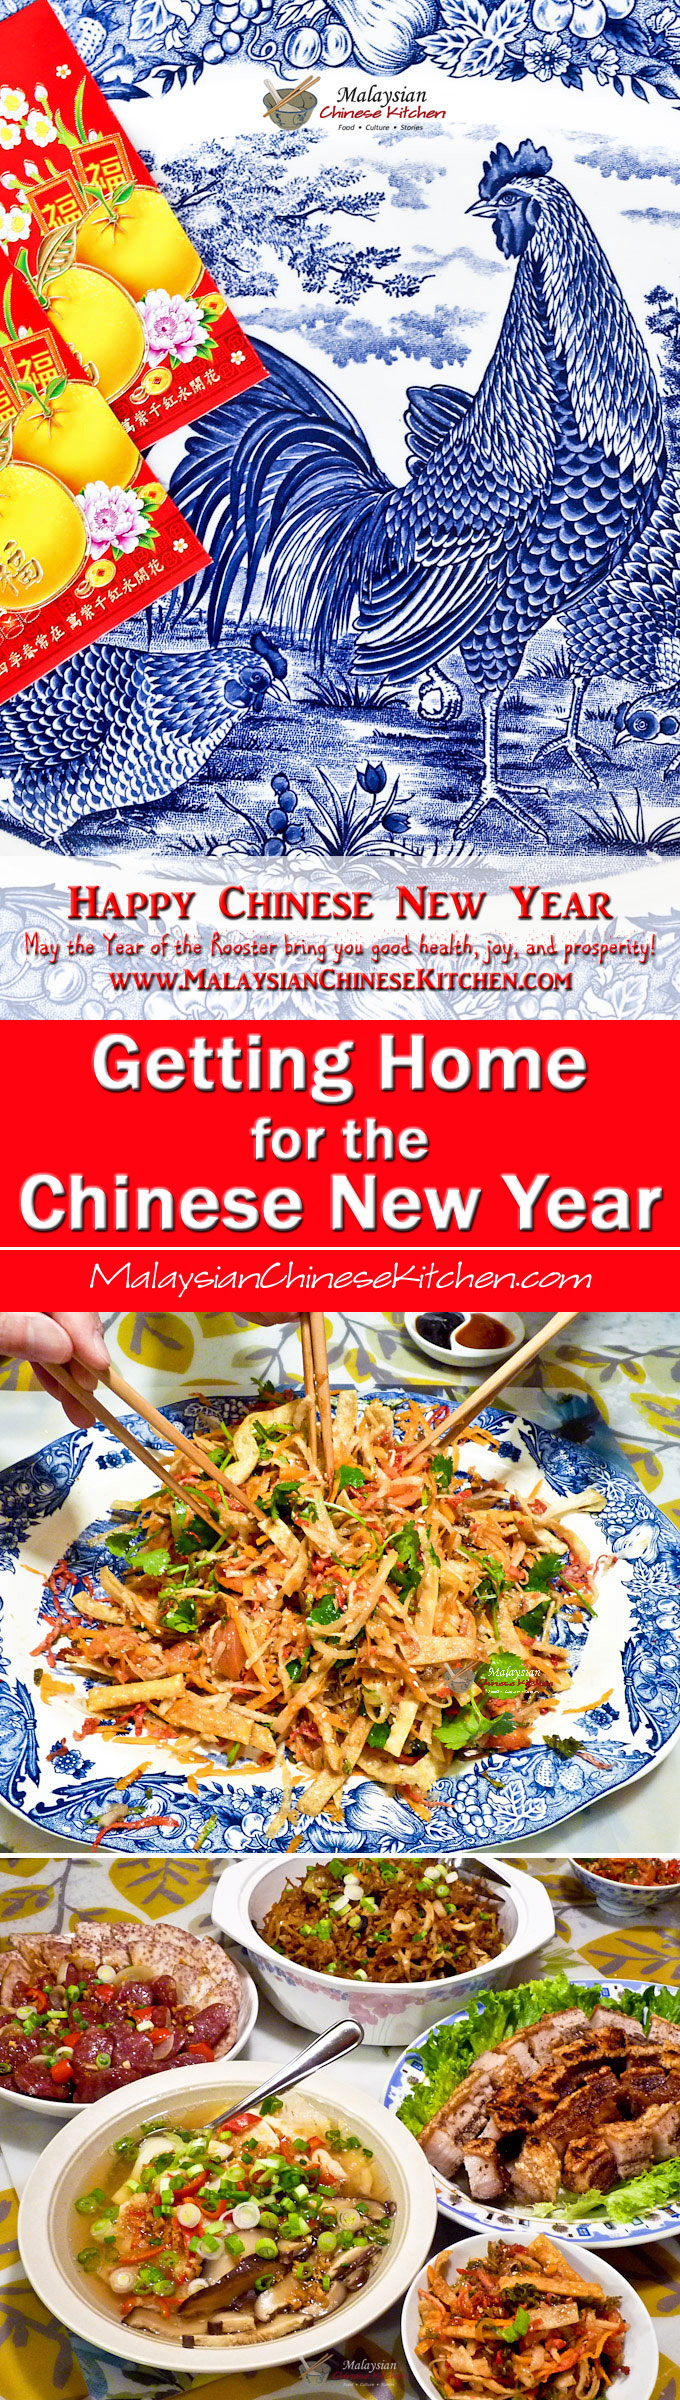 Getting Home for the Chinese New Year - Thoughts about the journey home for the celebration and what it means to those travelling and those waiting. | MalaysianChineseKitchen.com